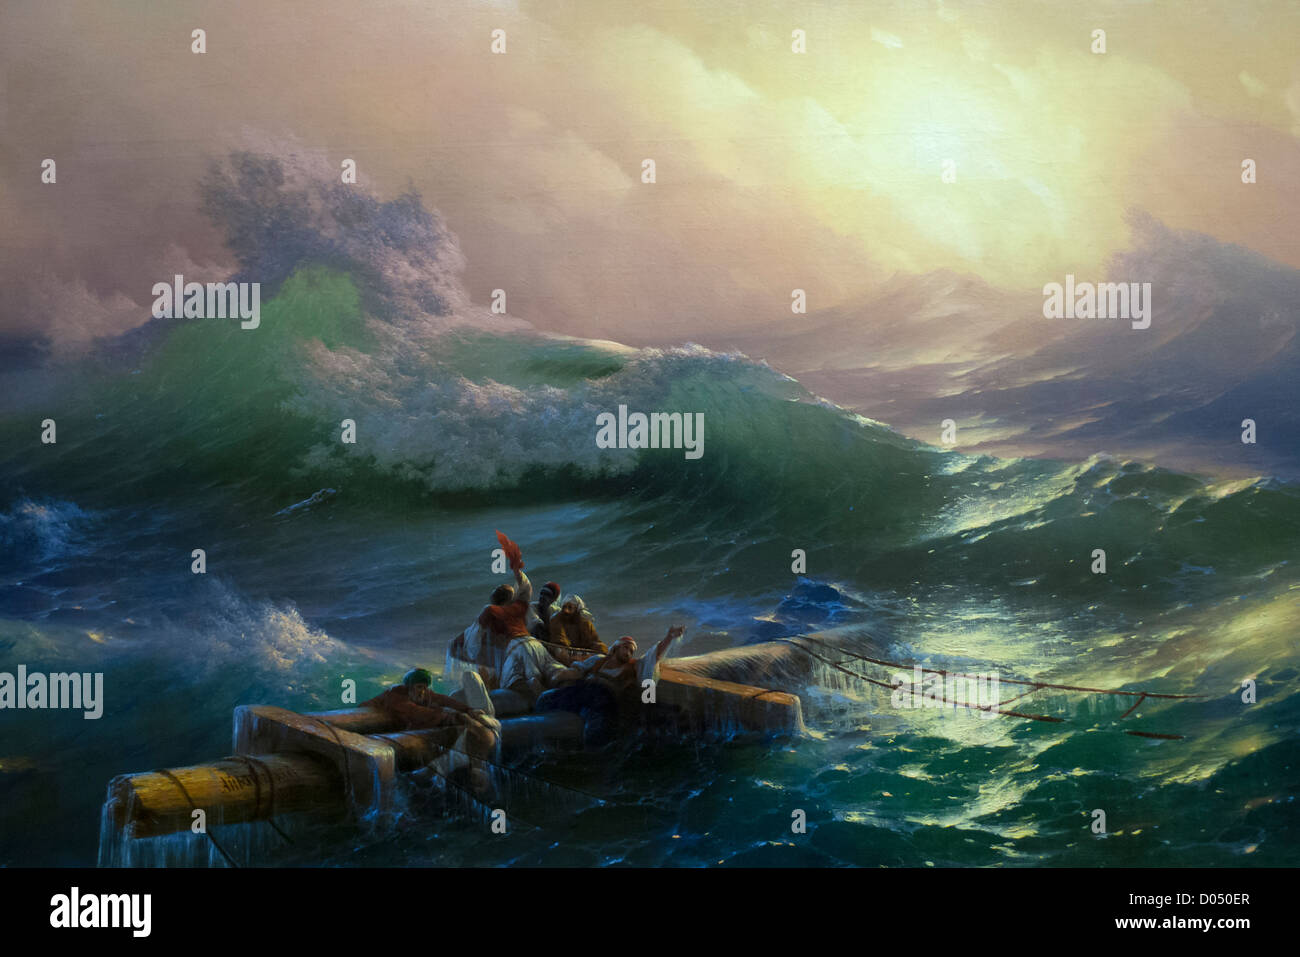 Stock Photo - Detail from 'The Ninth Wave' (1850) by Ivan Aivazovsky ...